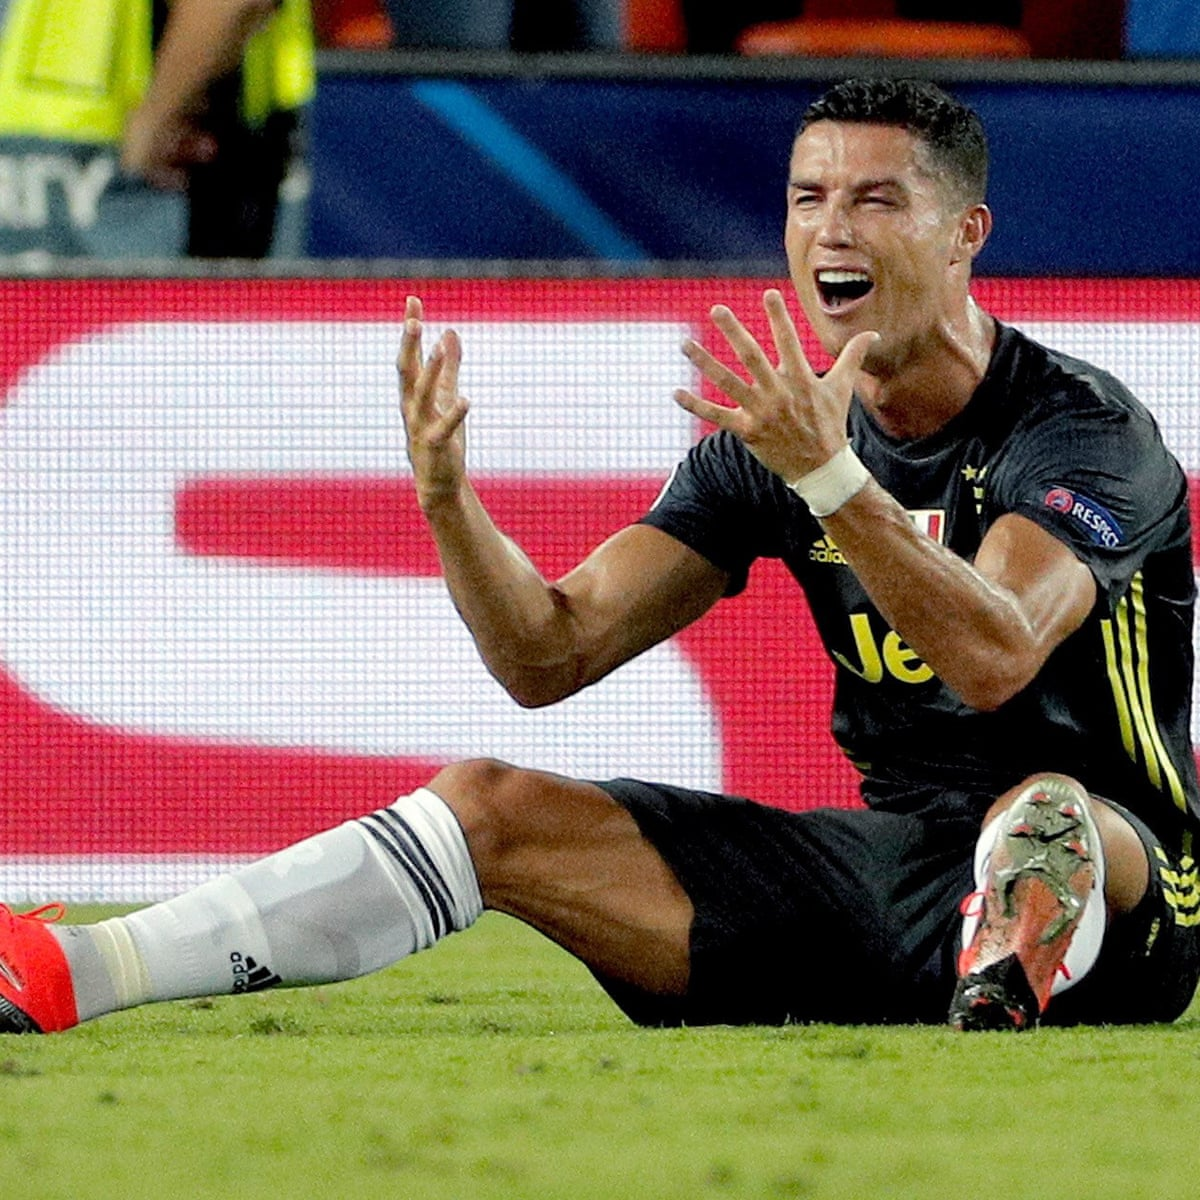 Cristiano Ronaldo Set For One Game Ban Clearing Him To Face Manchester United Cristiano Ronaldo The Guardian